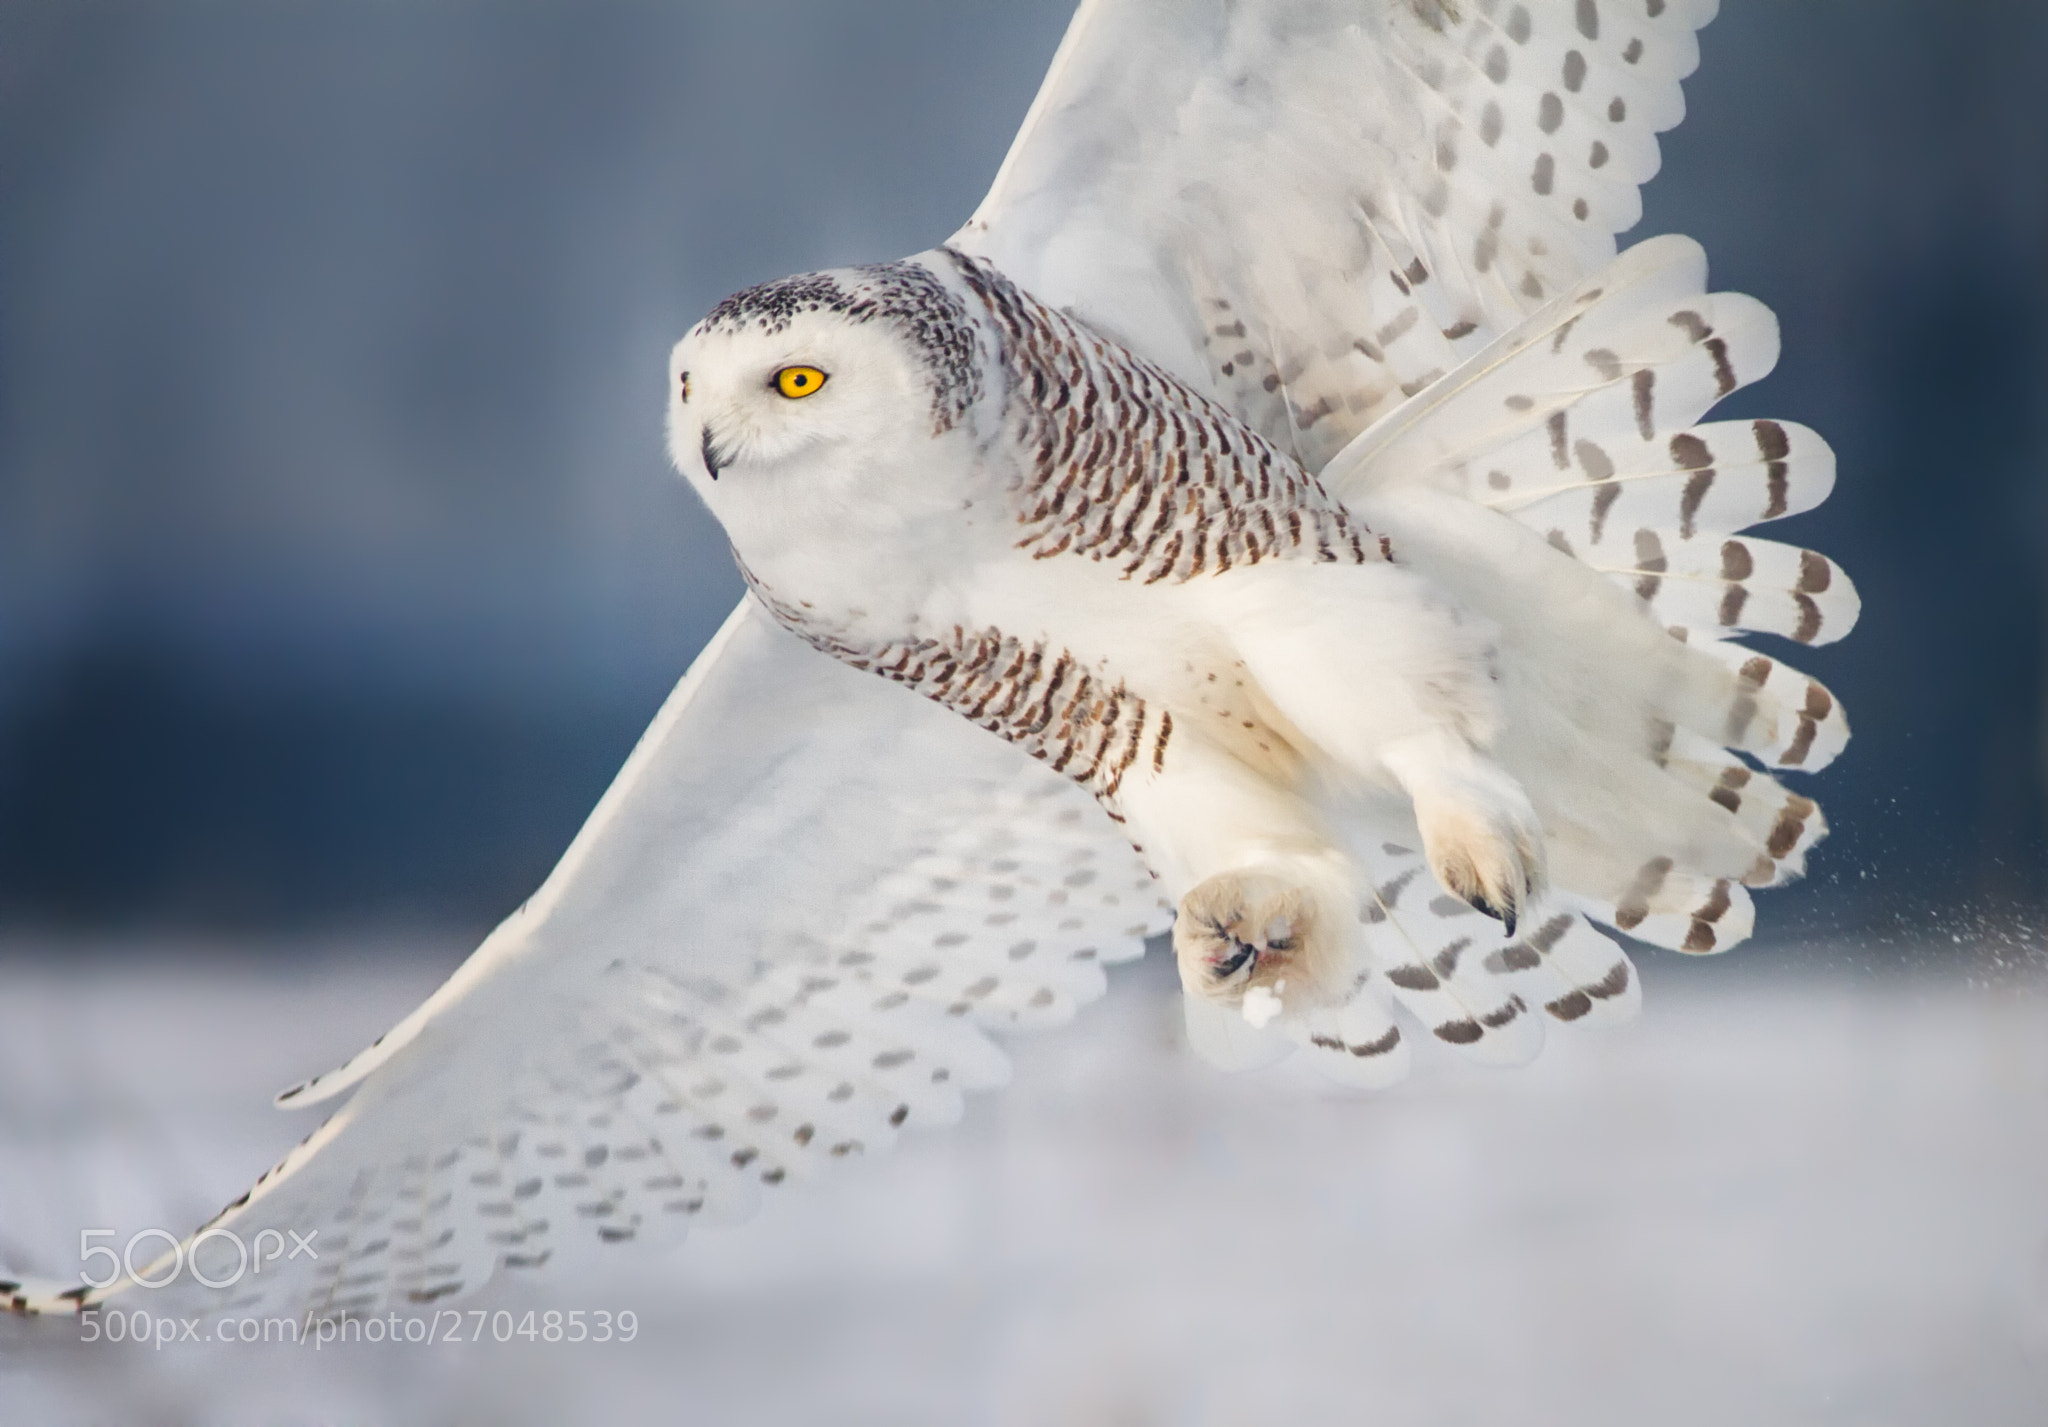 Photograph The Catch! by Christopher Cove on 500px